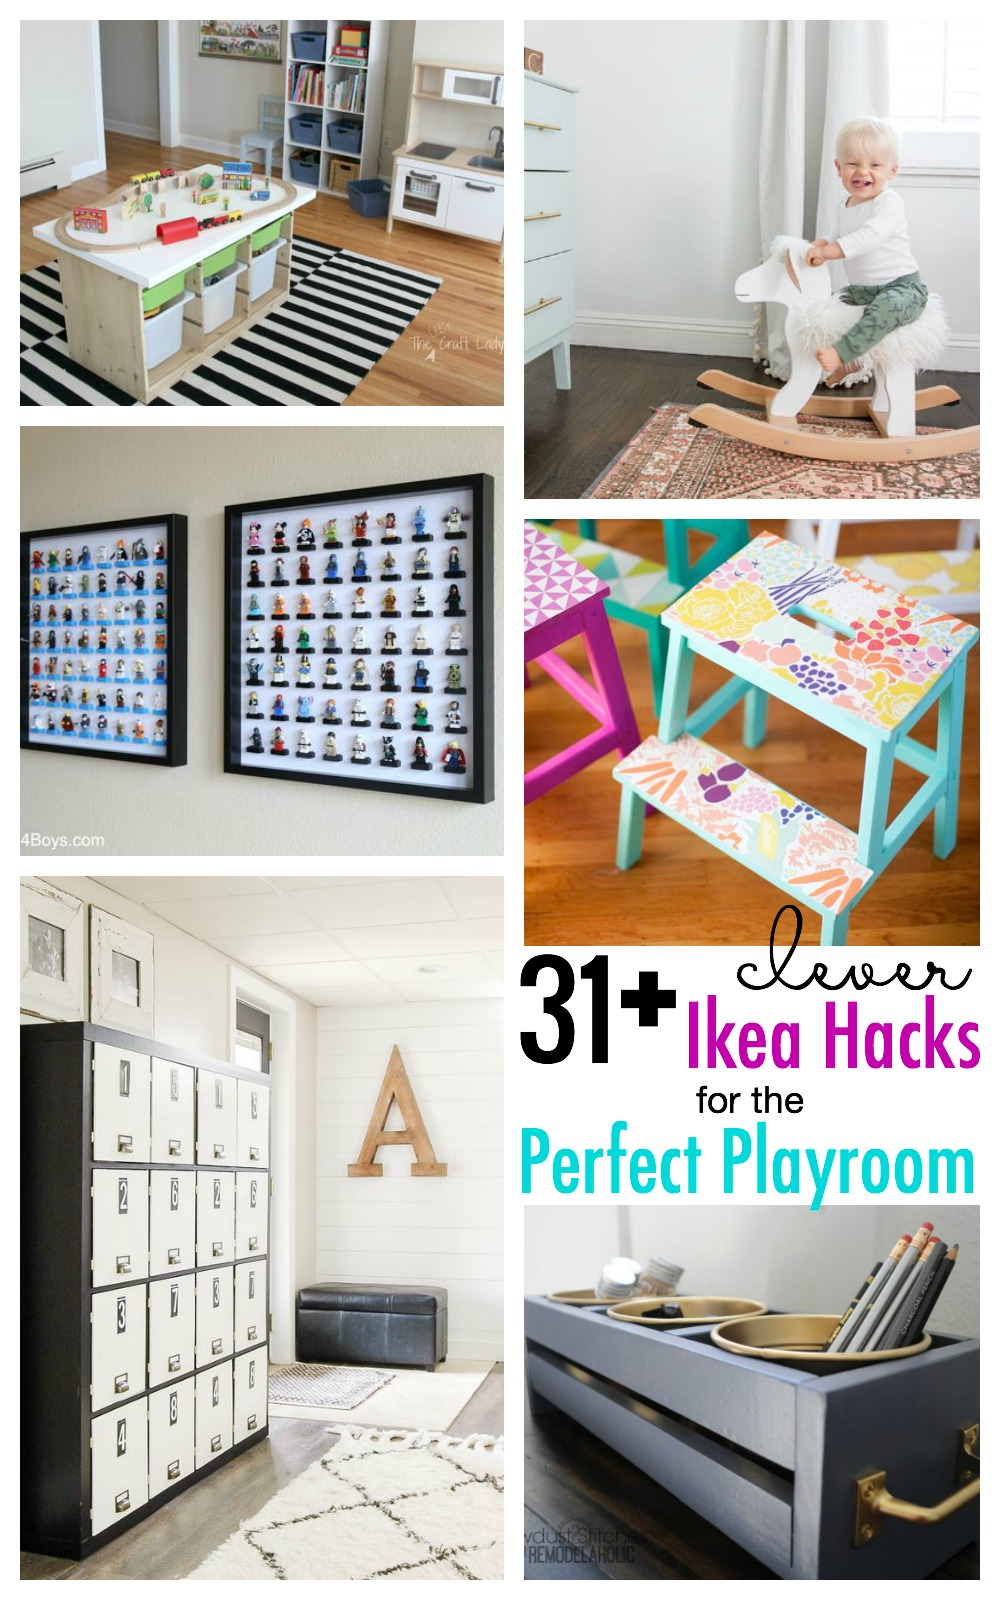 Time To Makeover The Playroom With These 30+ Clever IKEA Hacks For The  Playroom Featured